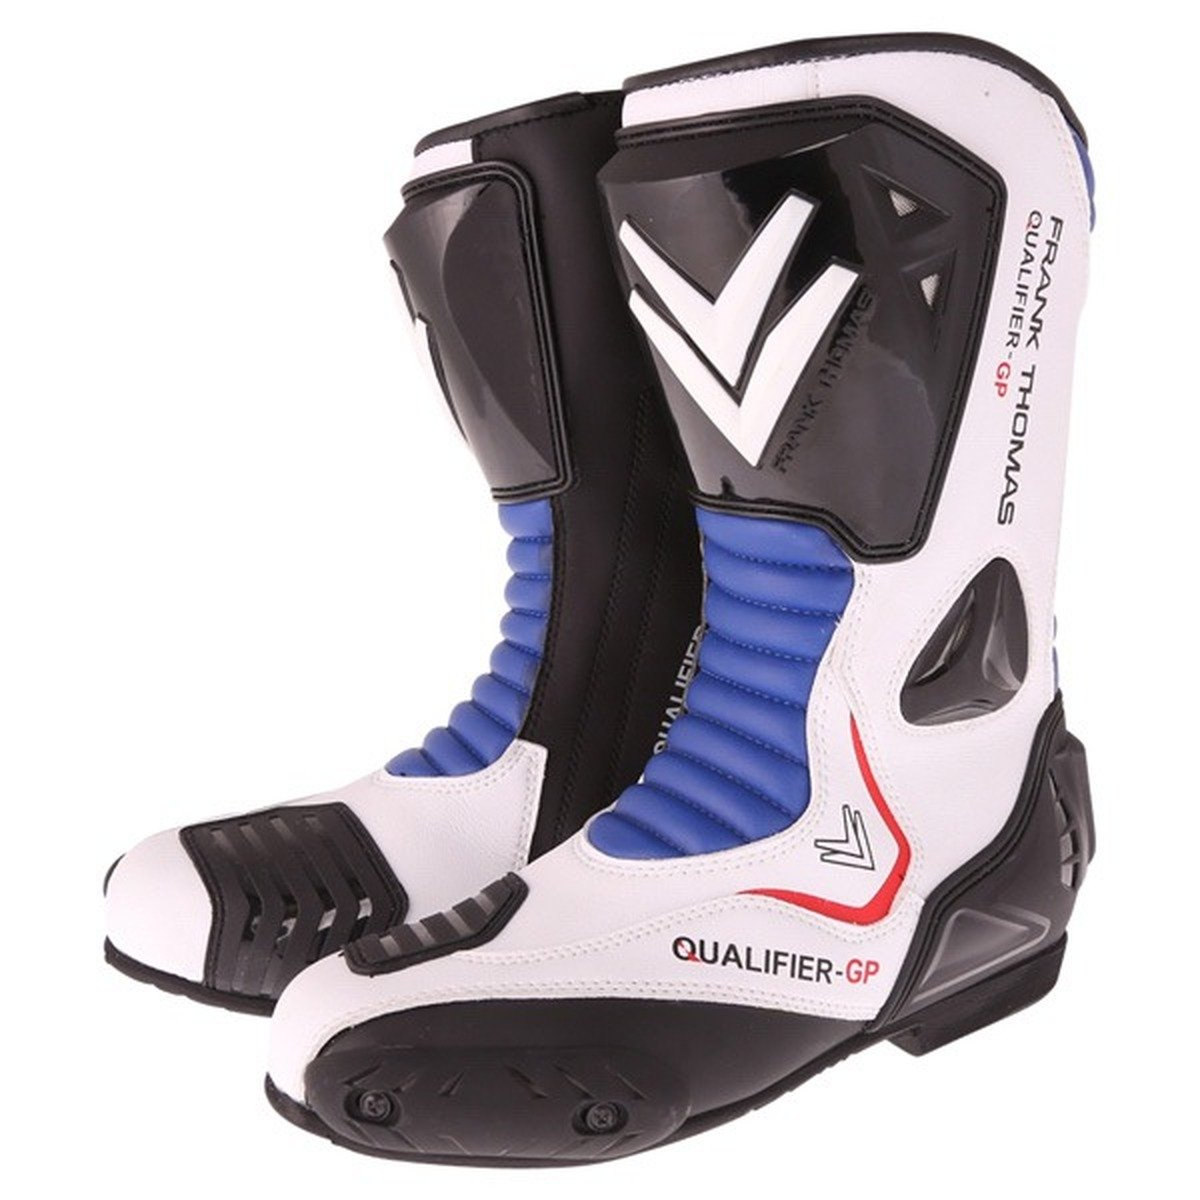 Frank Thomas Qualifier GP Boots in Blue